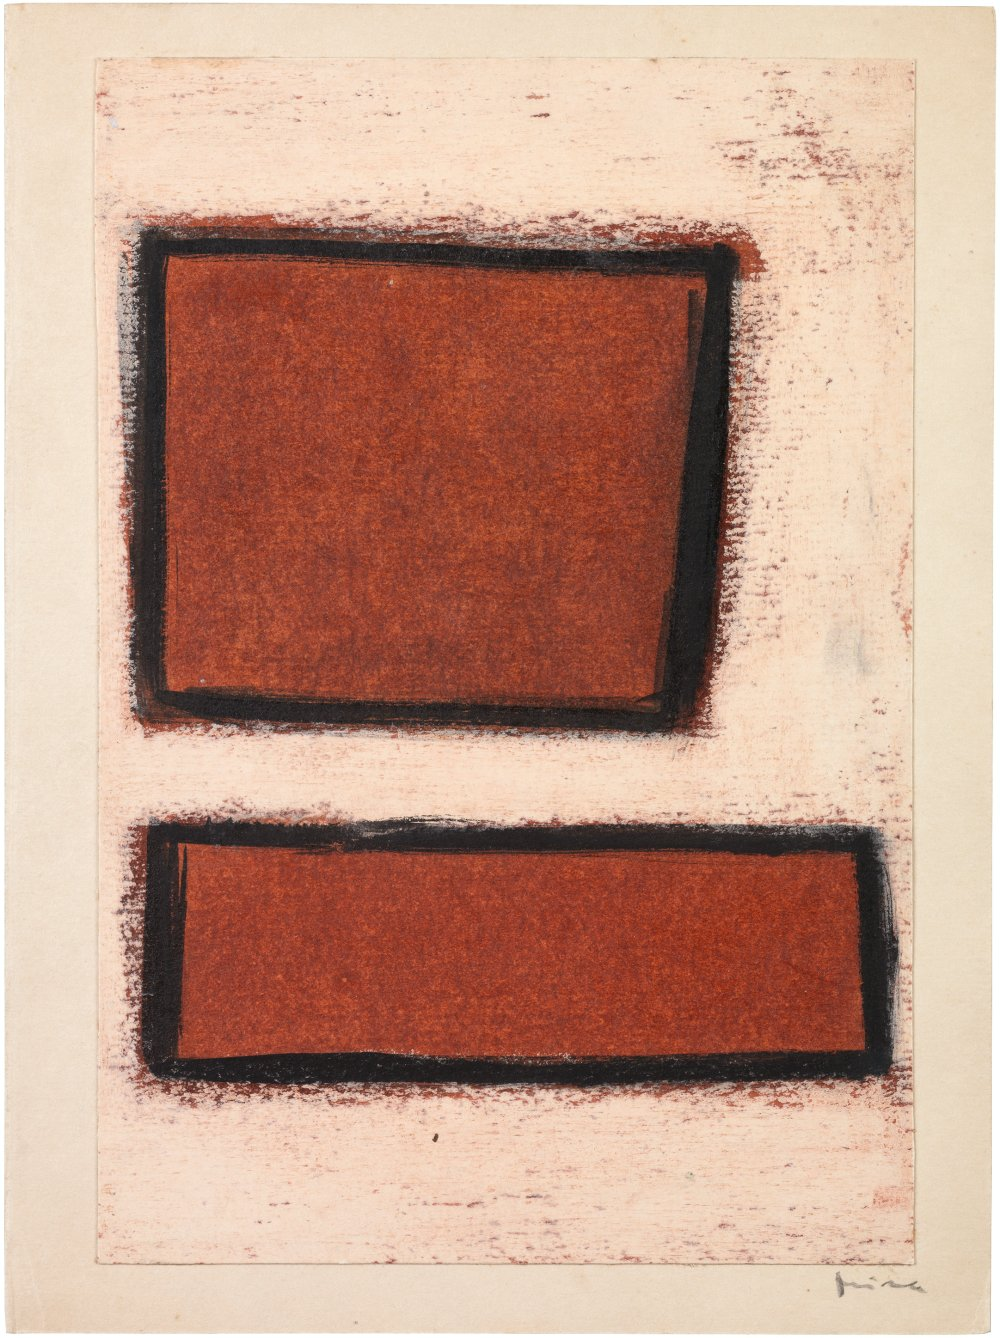 Untitled (Two red forms)